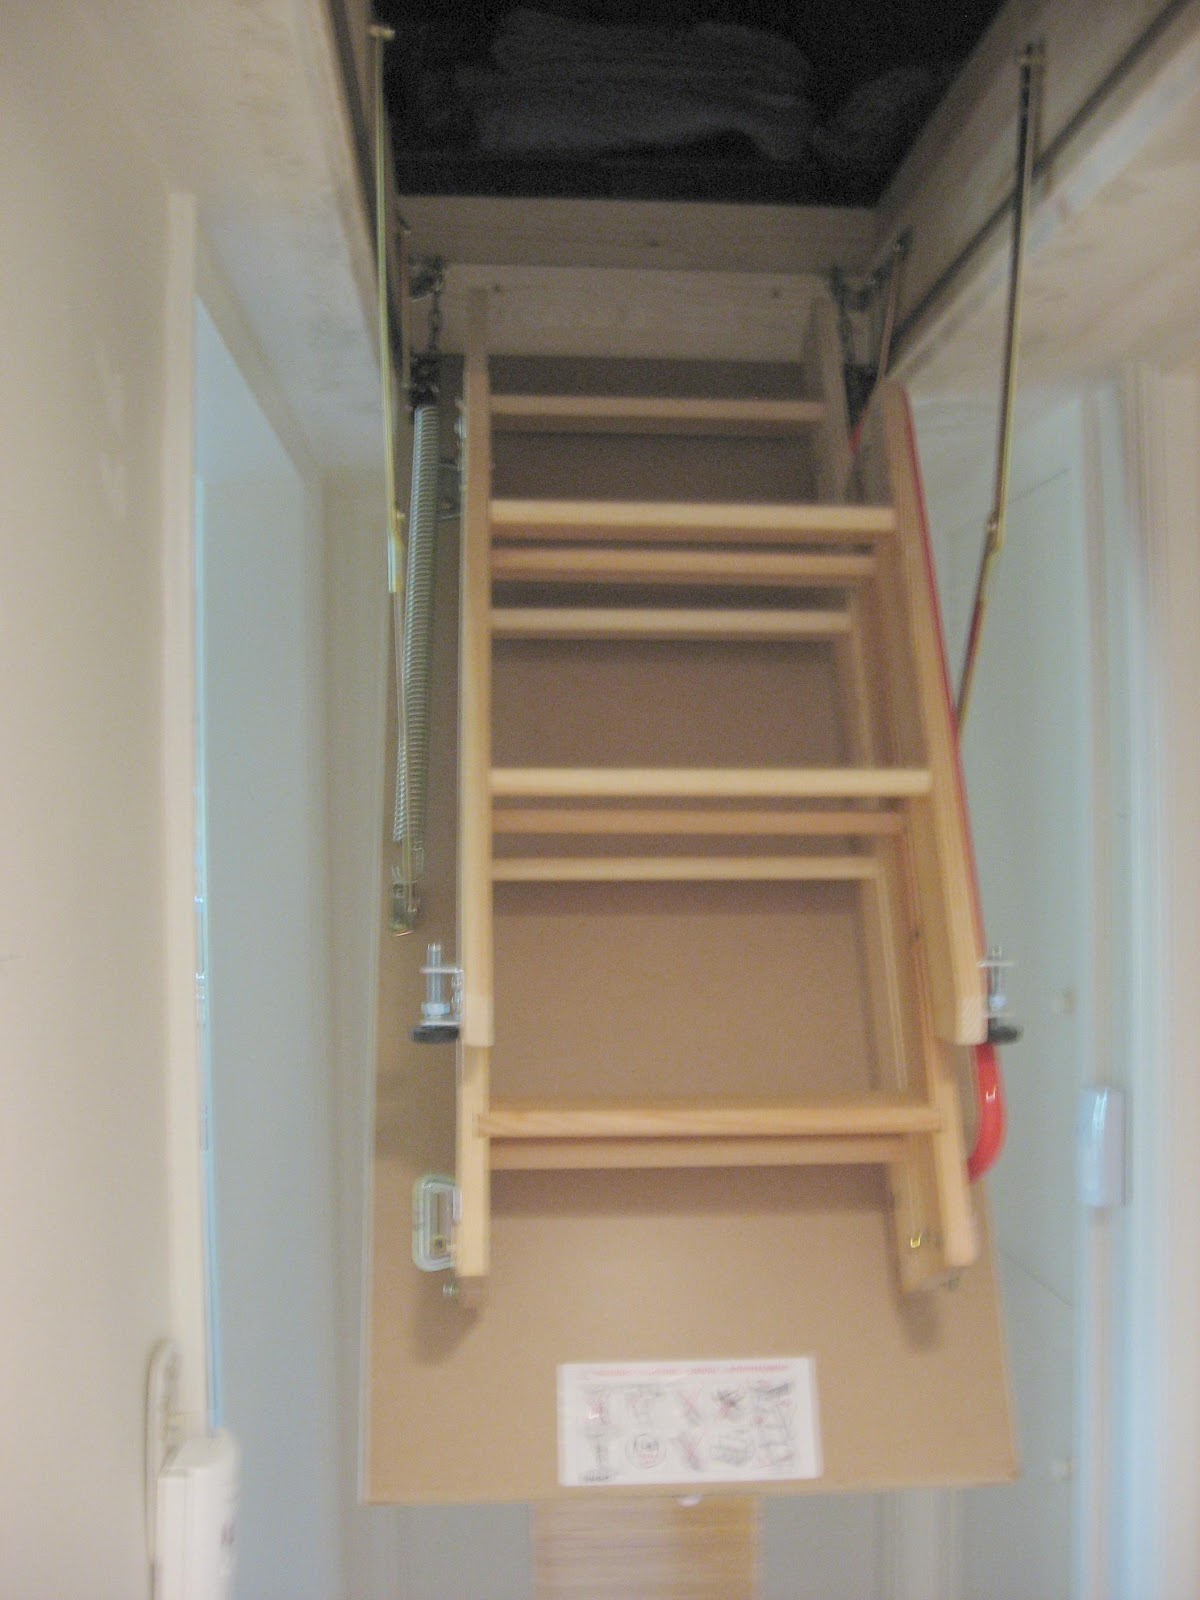 R5 Portals Fakro Attic Ladder Installation Progress